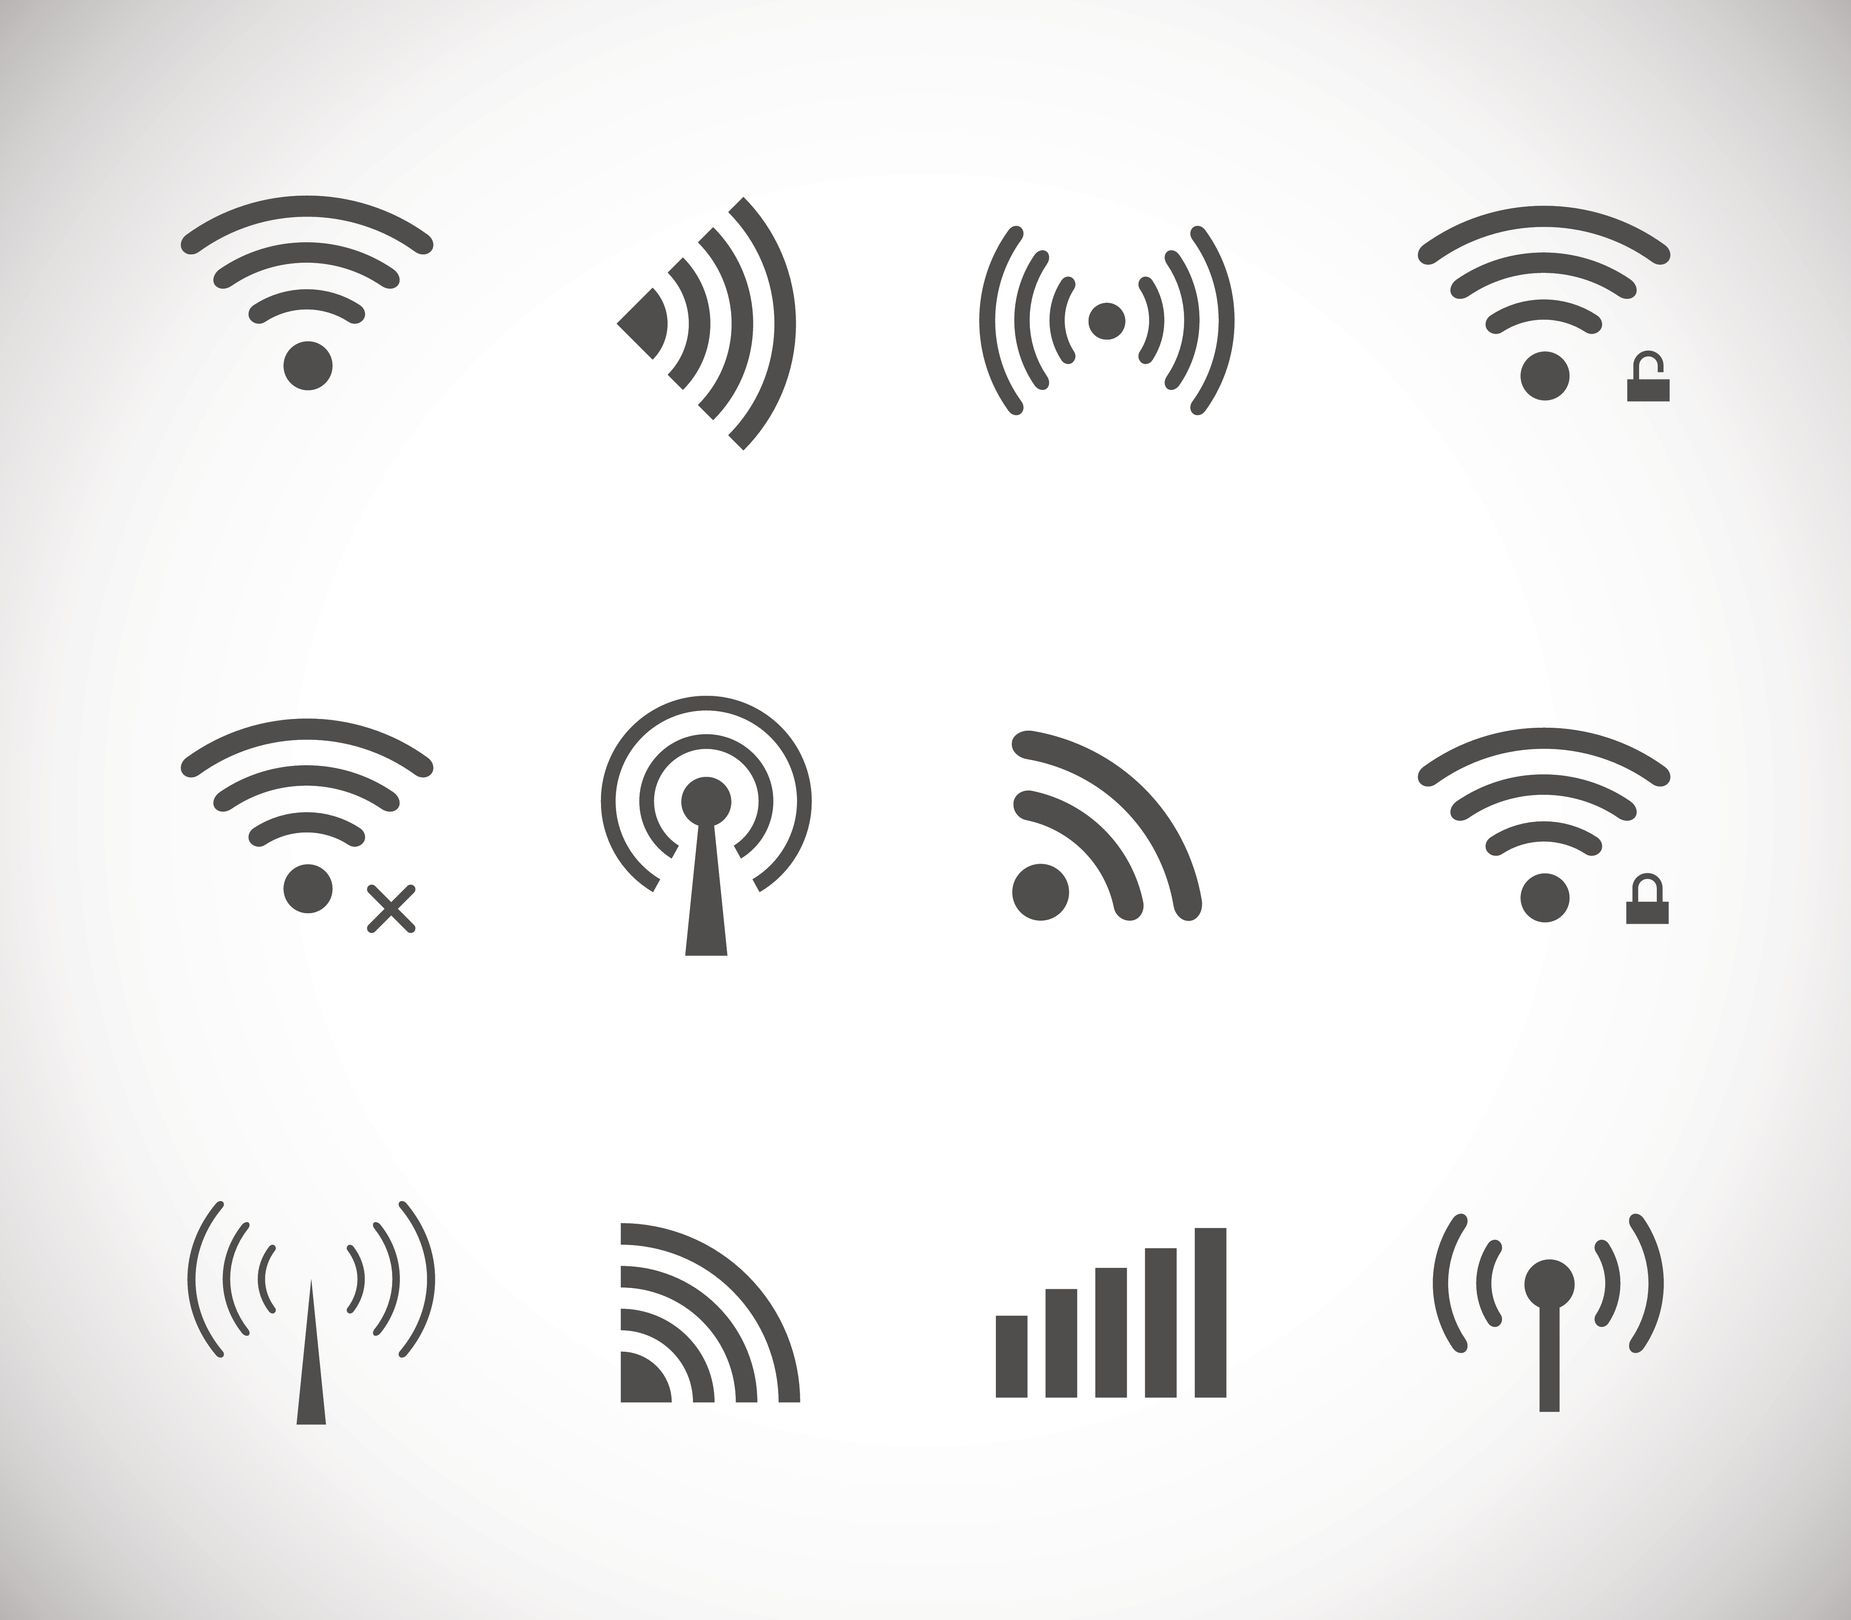 Different Wi-Fi icons